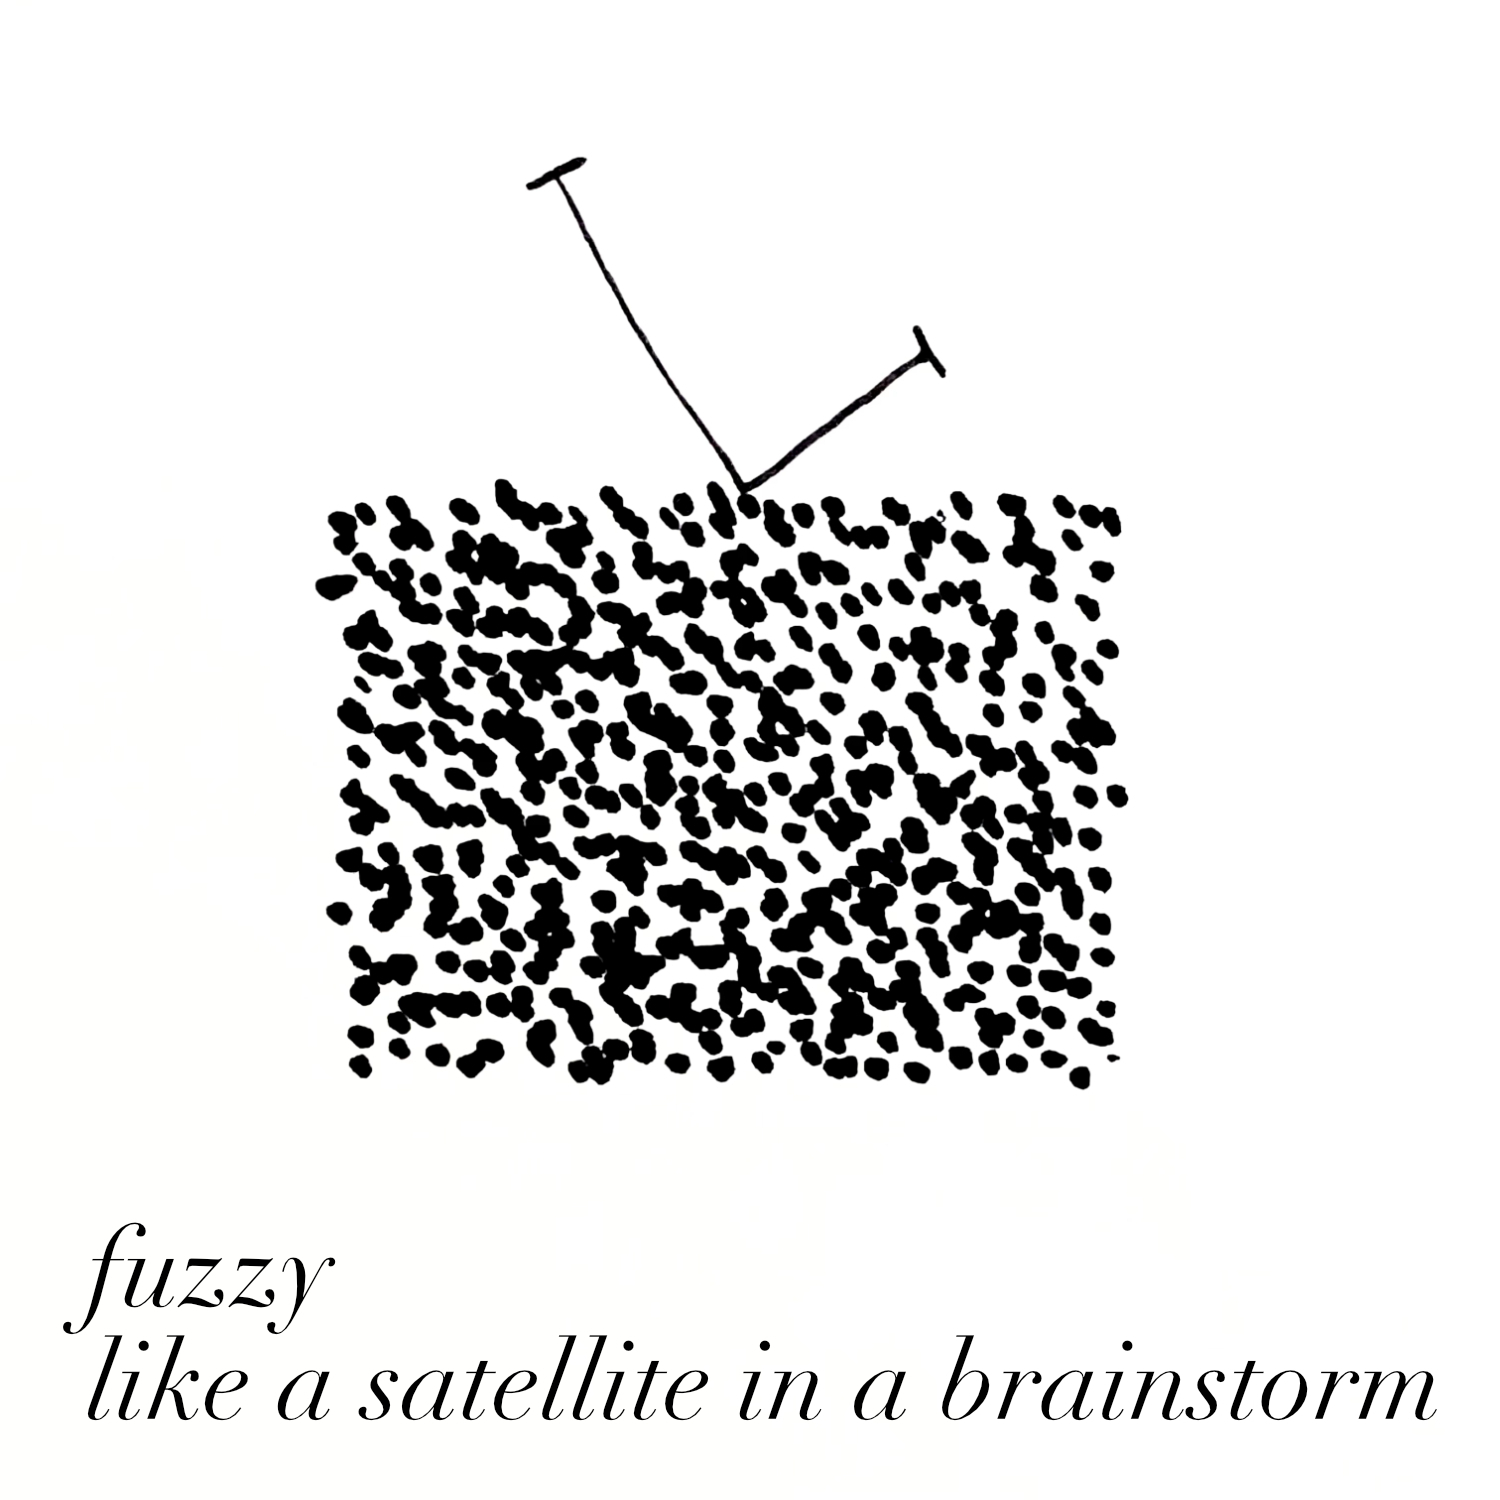 fuzzy like a satellite in a brainstorm